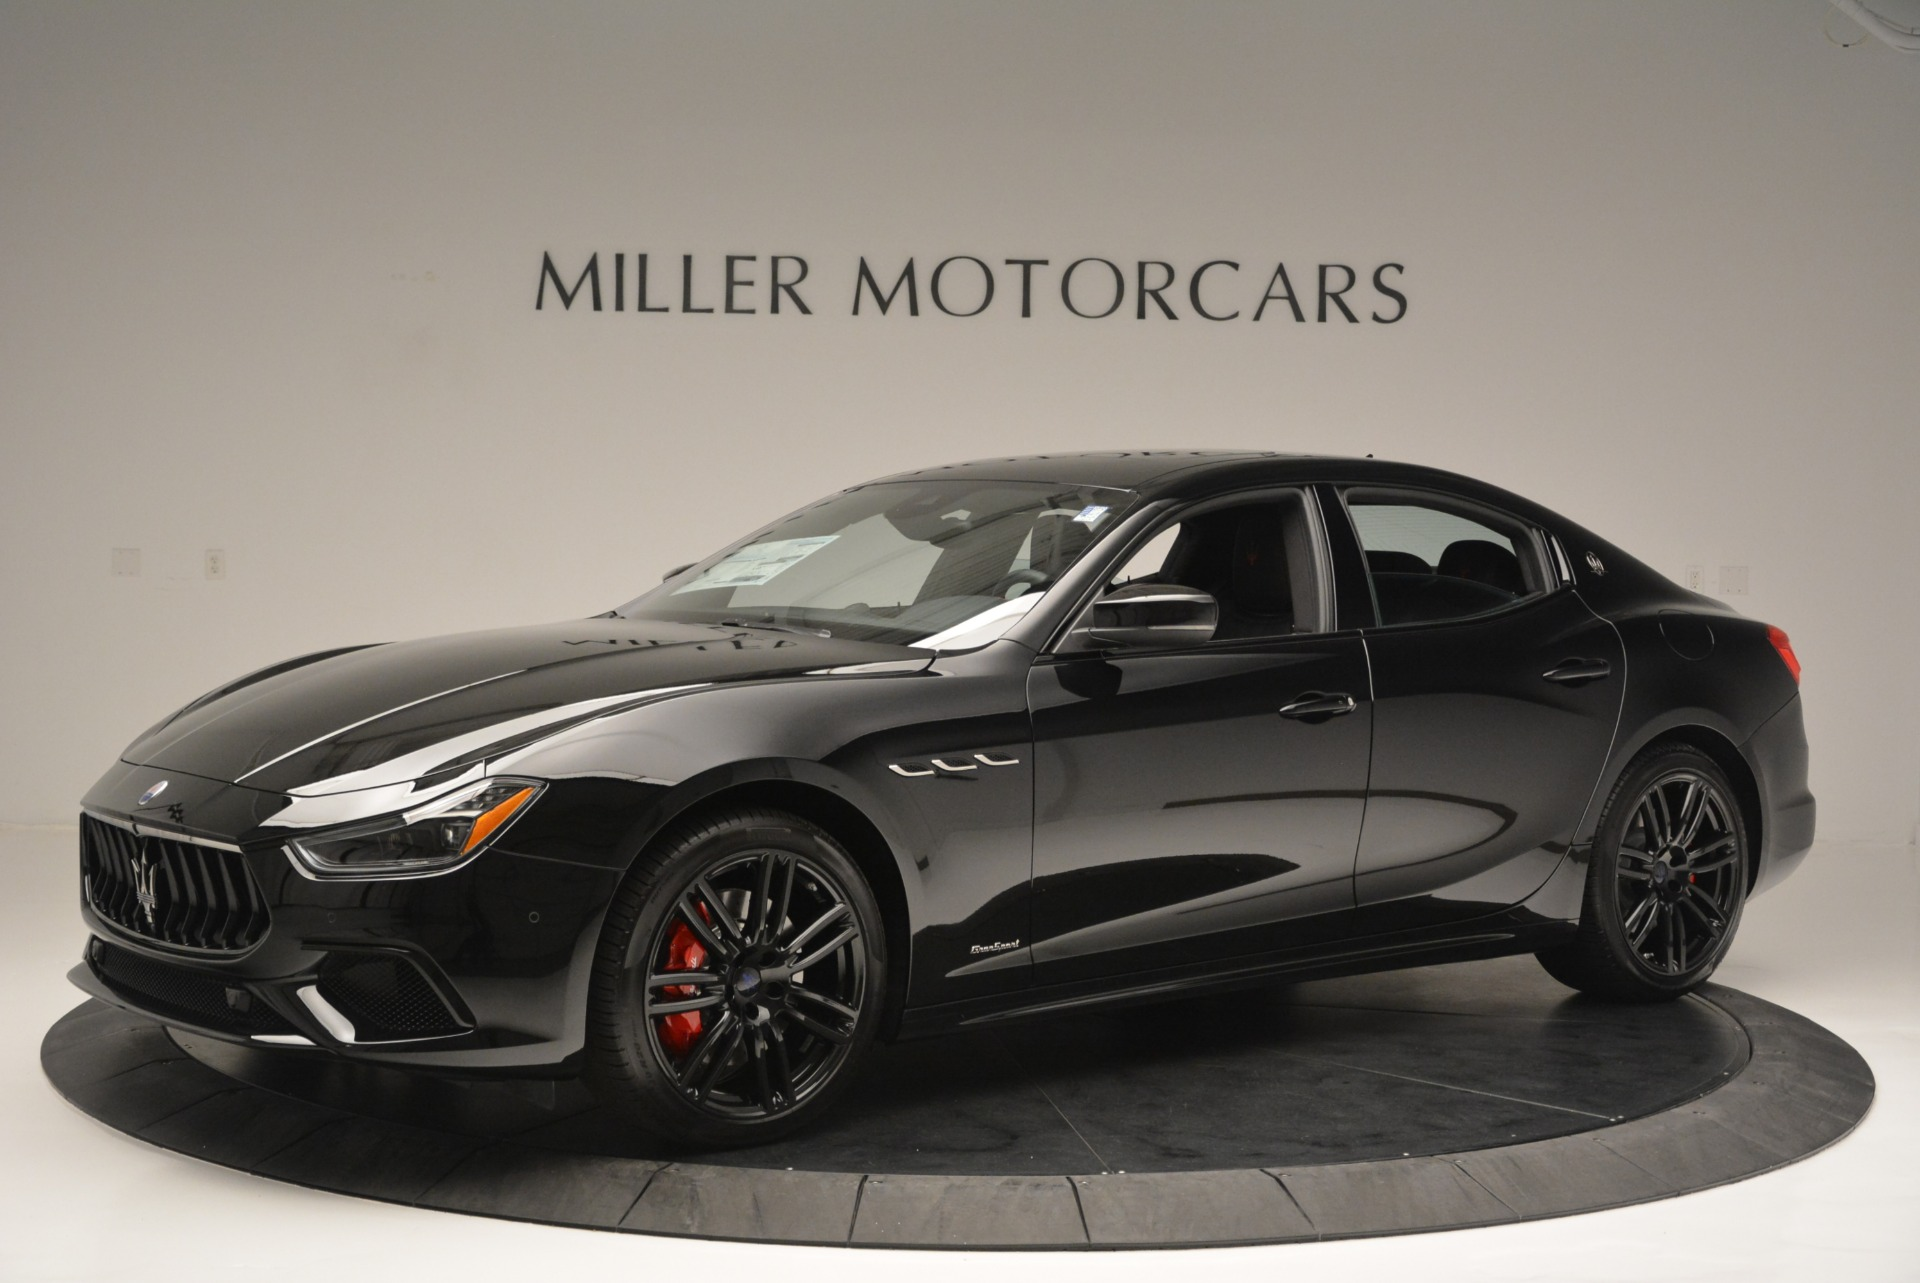 New 2018 Maserati Ghibli SQ4 GranSport Nerissimo For Sale In Westport, CT 2366_p2